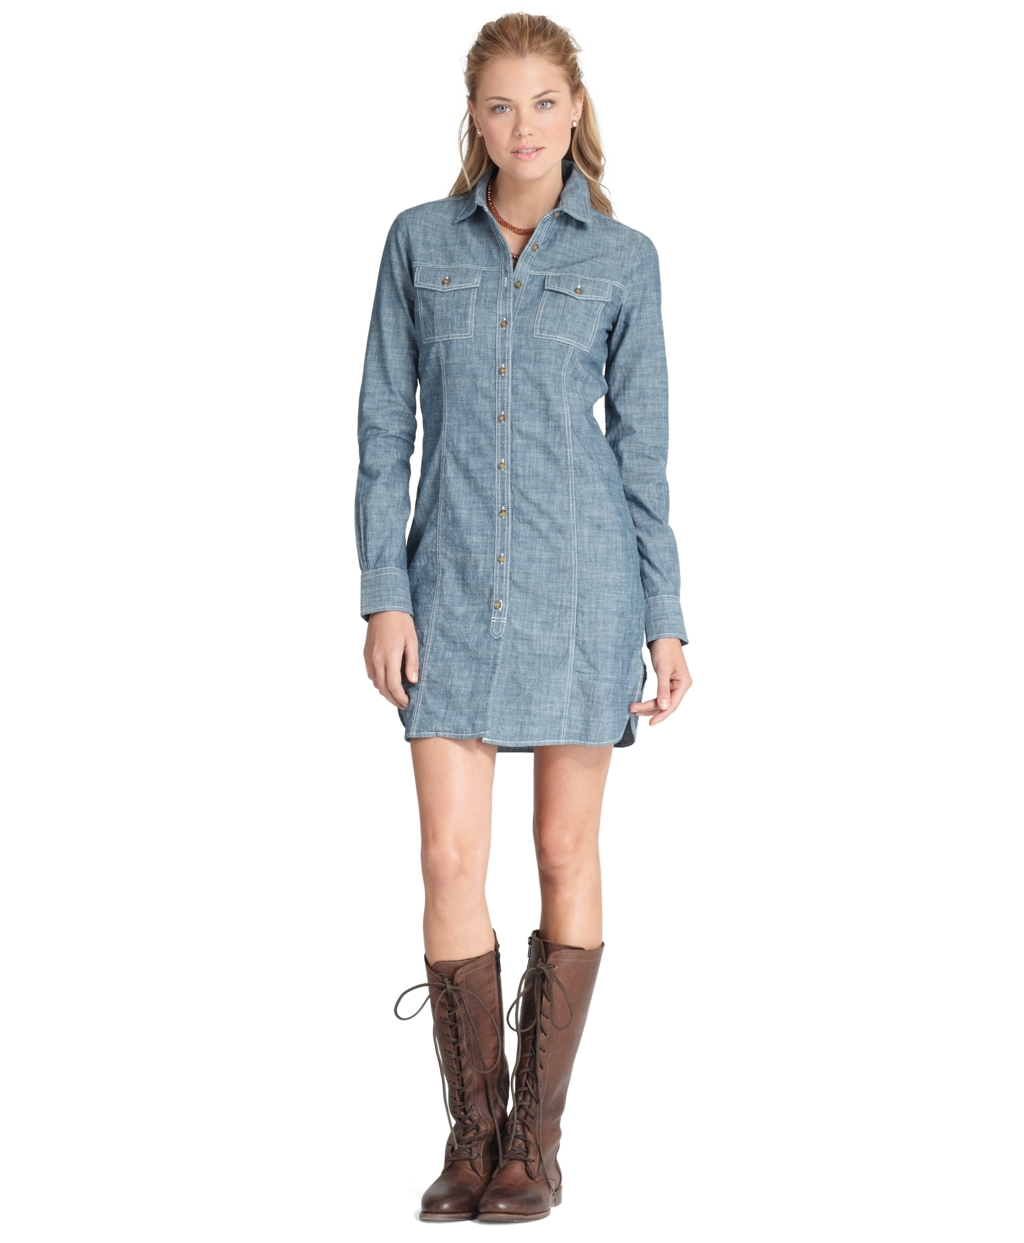 Brooks brothers chambray shirt dress in blue dark for Chambray dress